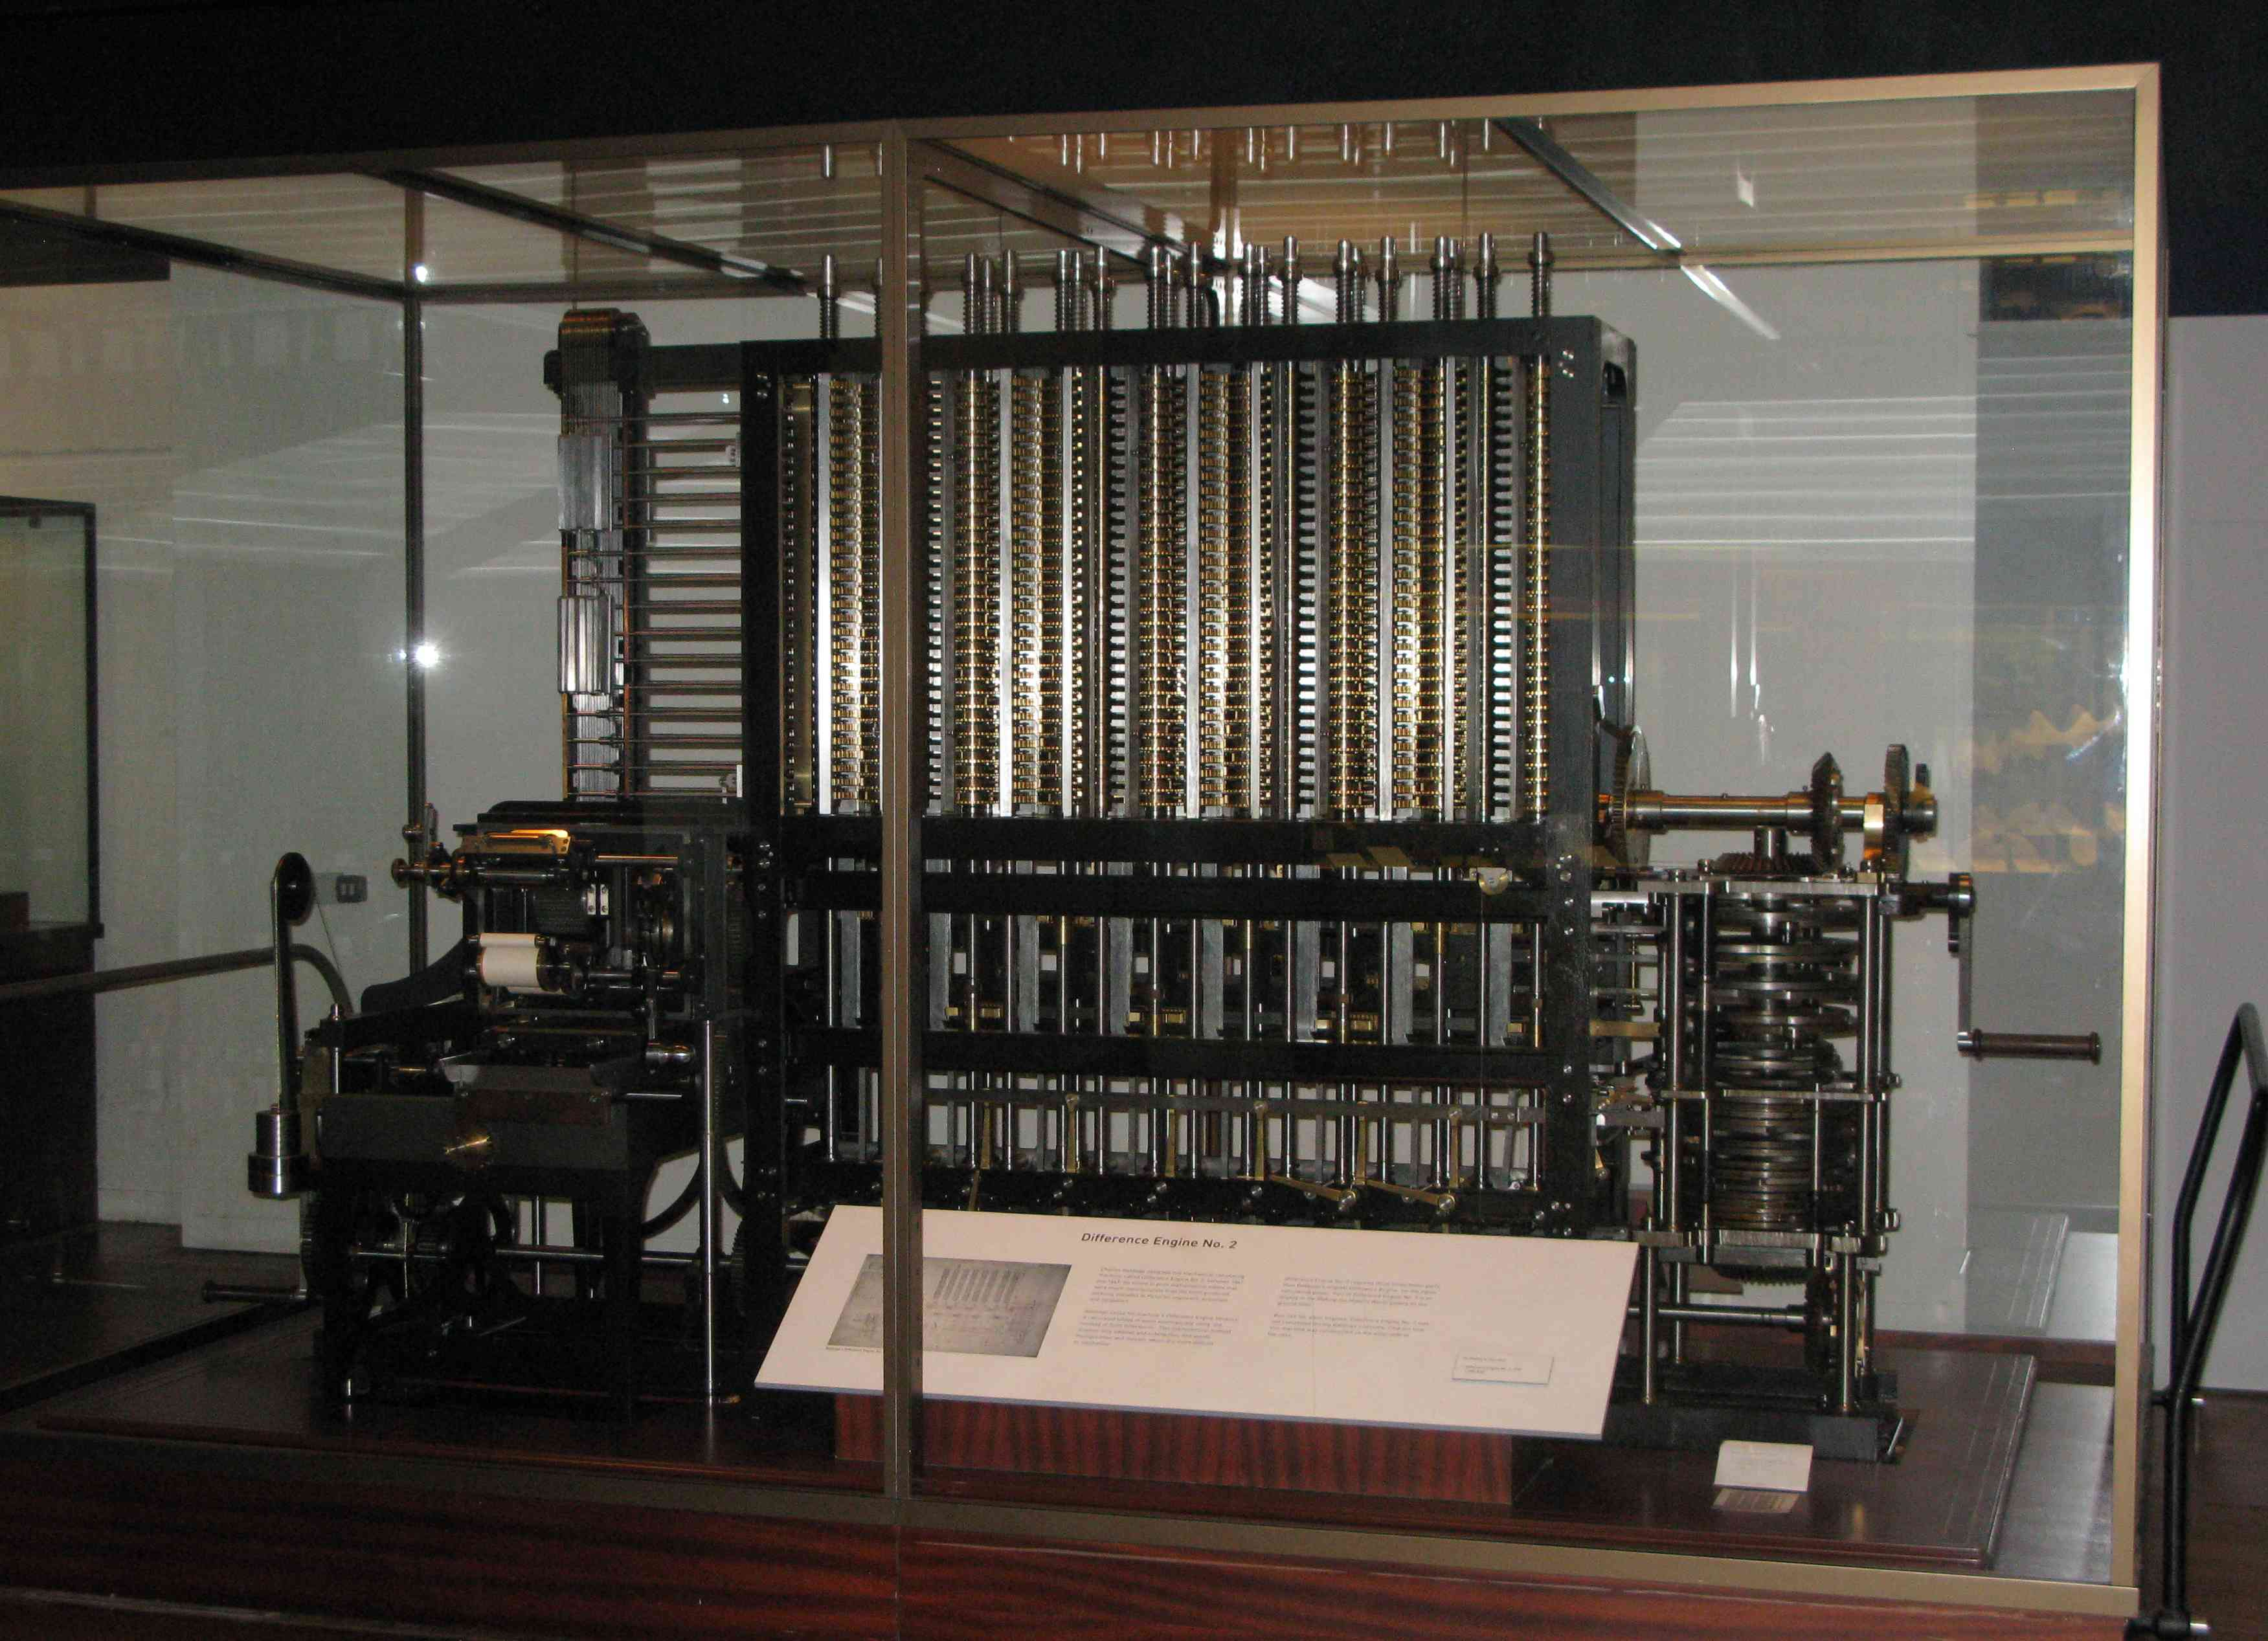 The Science Museum's Difference Engine No. 2, built from Charles Babbage's design